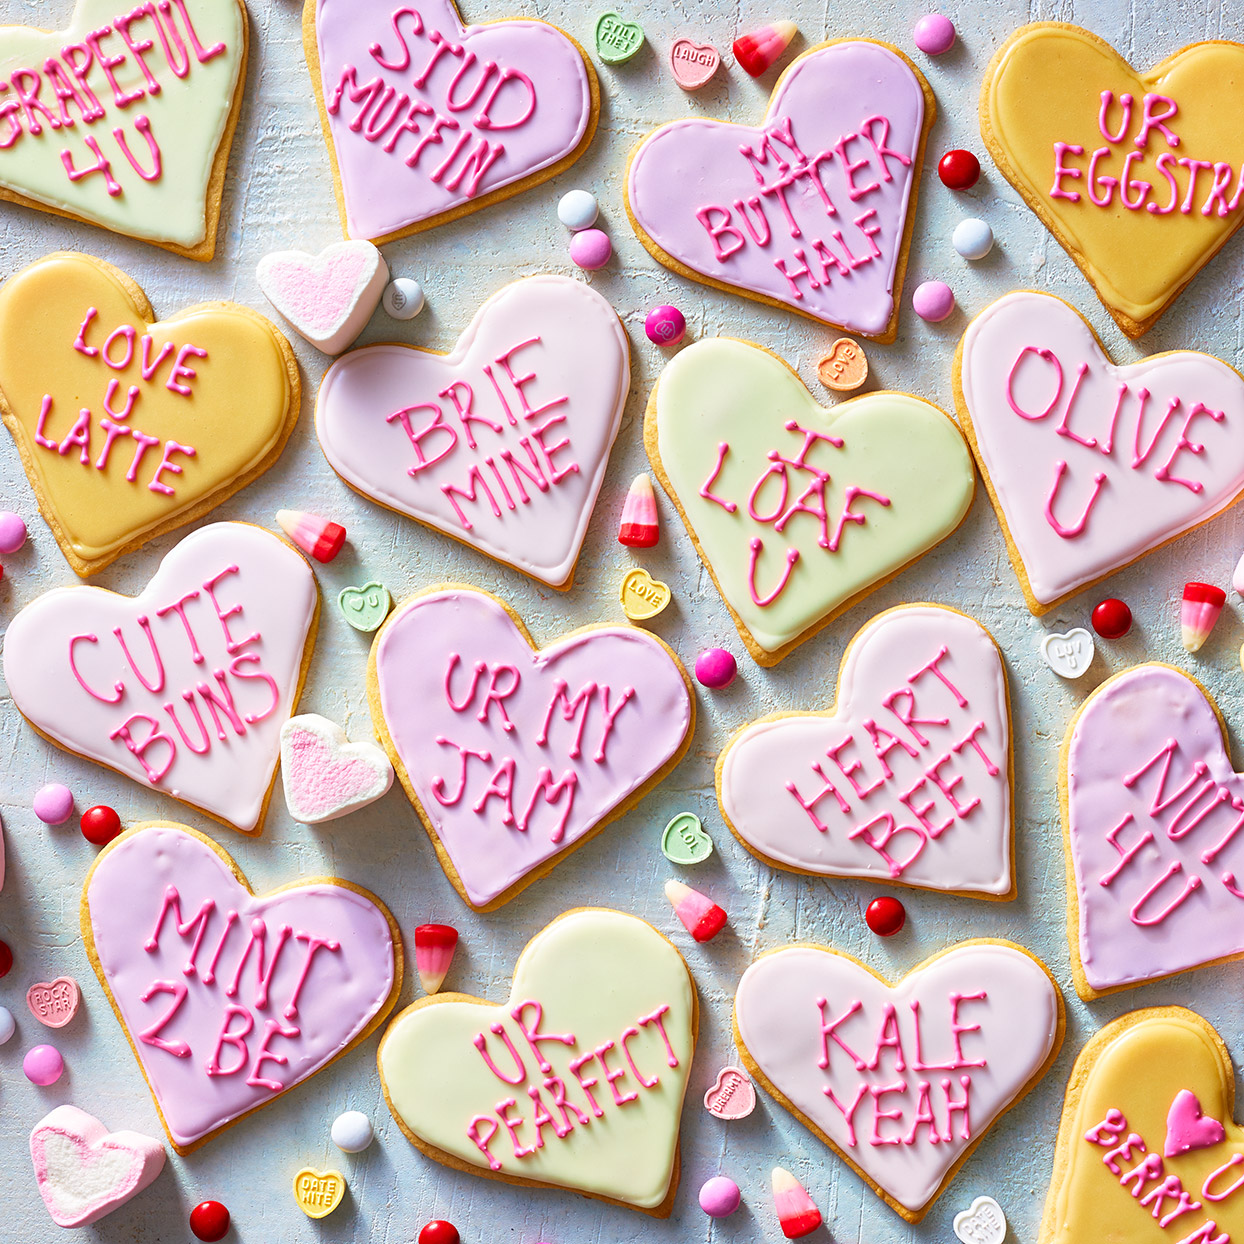 Celebrate Valentine's Day with these heart-shaped sugar cookies! This recipe uses whole-wheat pastry flour, cream cheese and lemon extract to make a healthier (and delicious!) cookie perfect for decorating. Bring them to school or work to get the conversation started. Source: EatingWell.com, February 2020